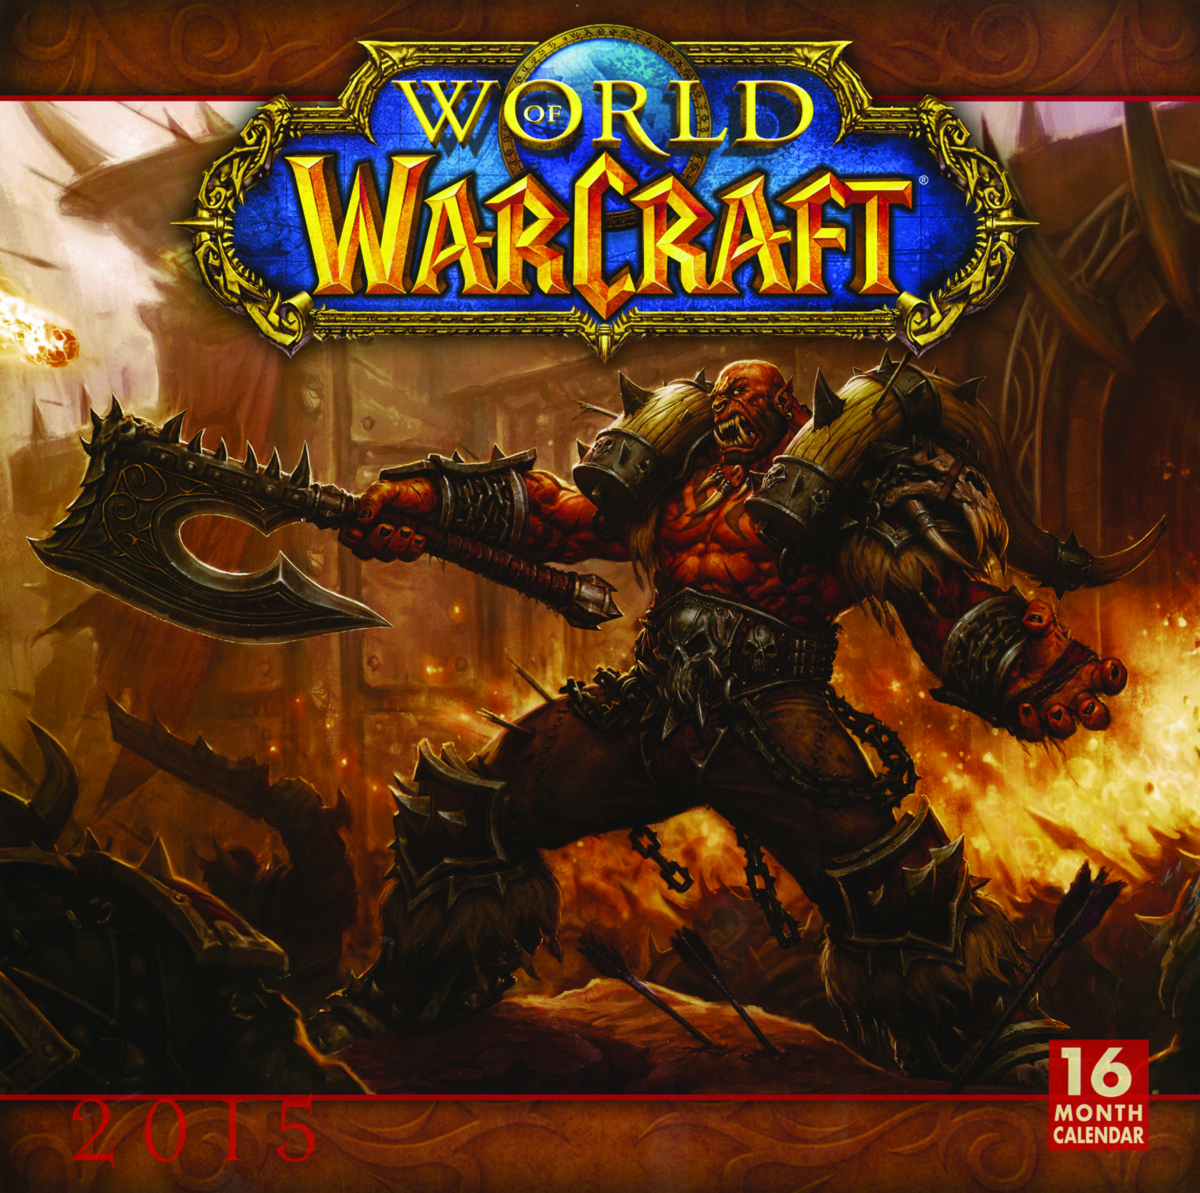 WORLD OF WARCRAFT 2015 16 MONTH WALL CALENDAR